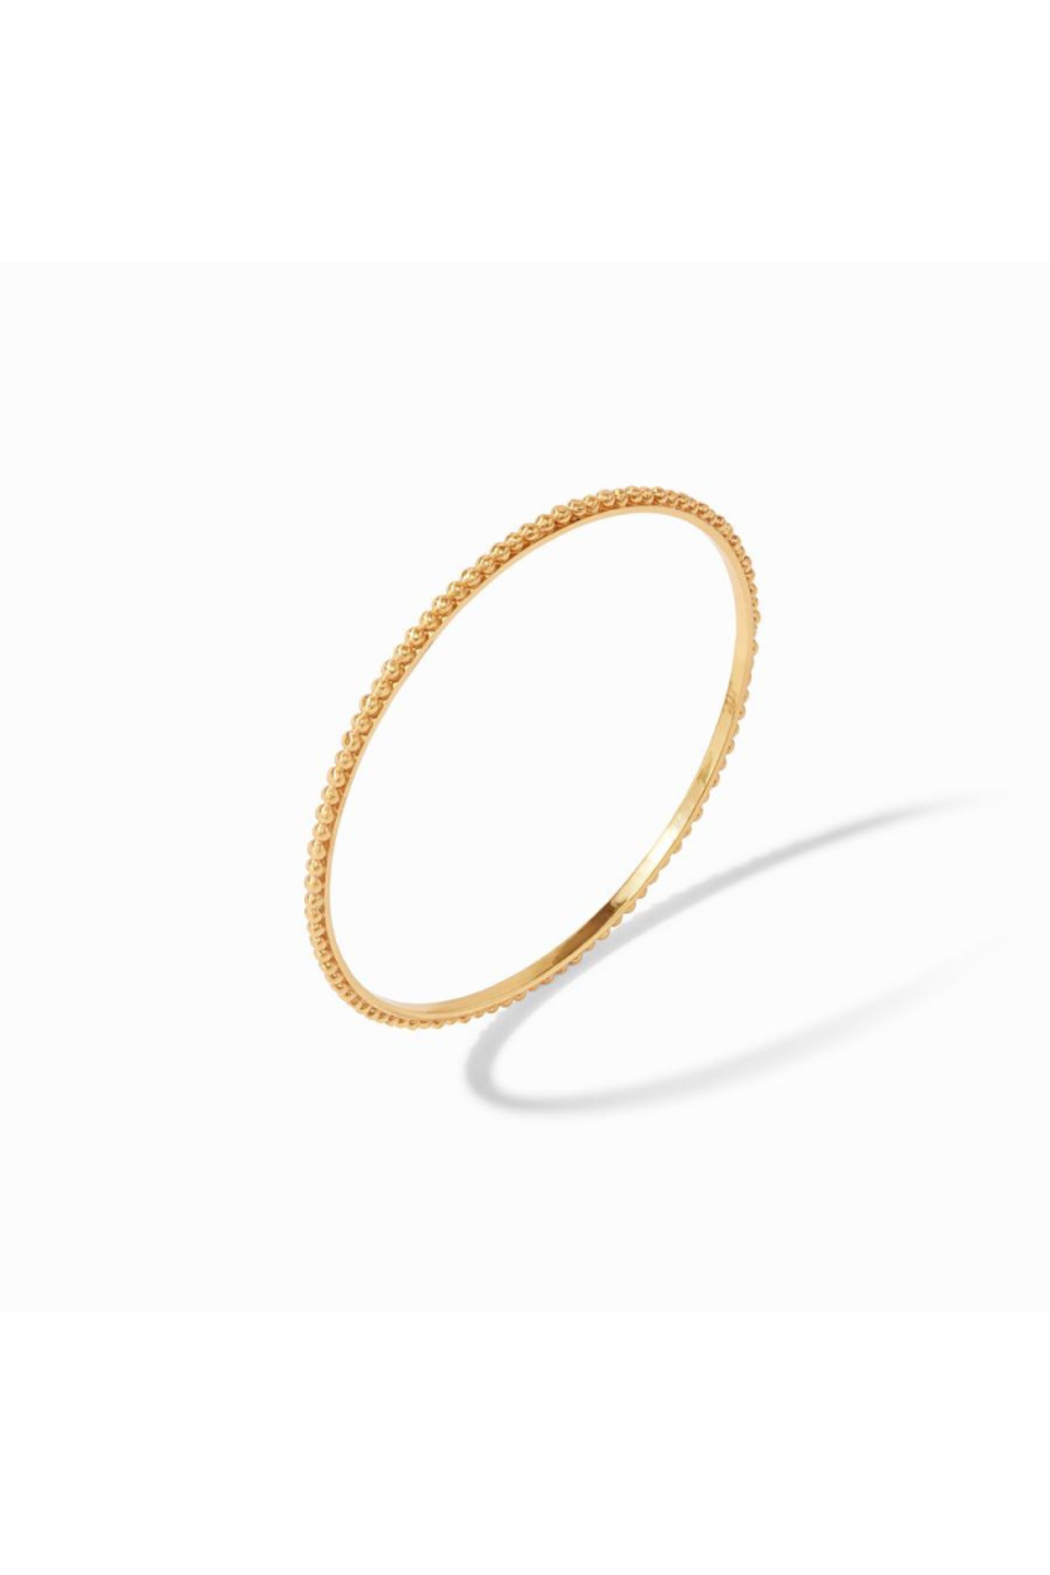 Julie Vos Colette Bead Bangle Gold Small - Front Full Image